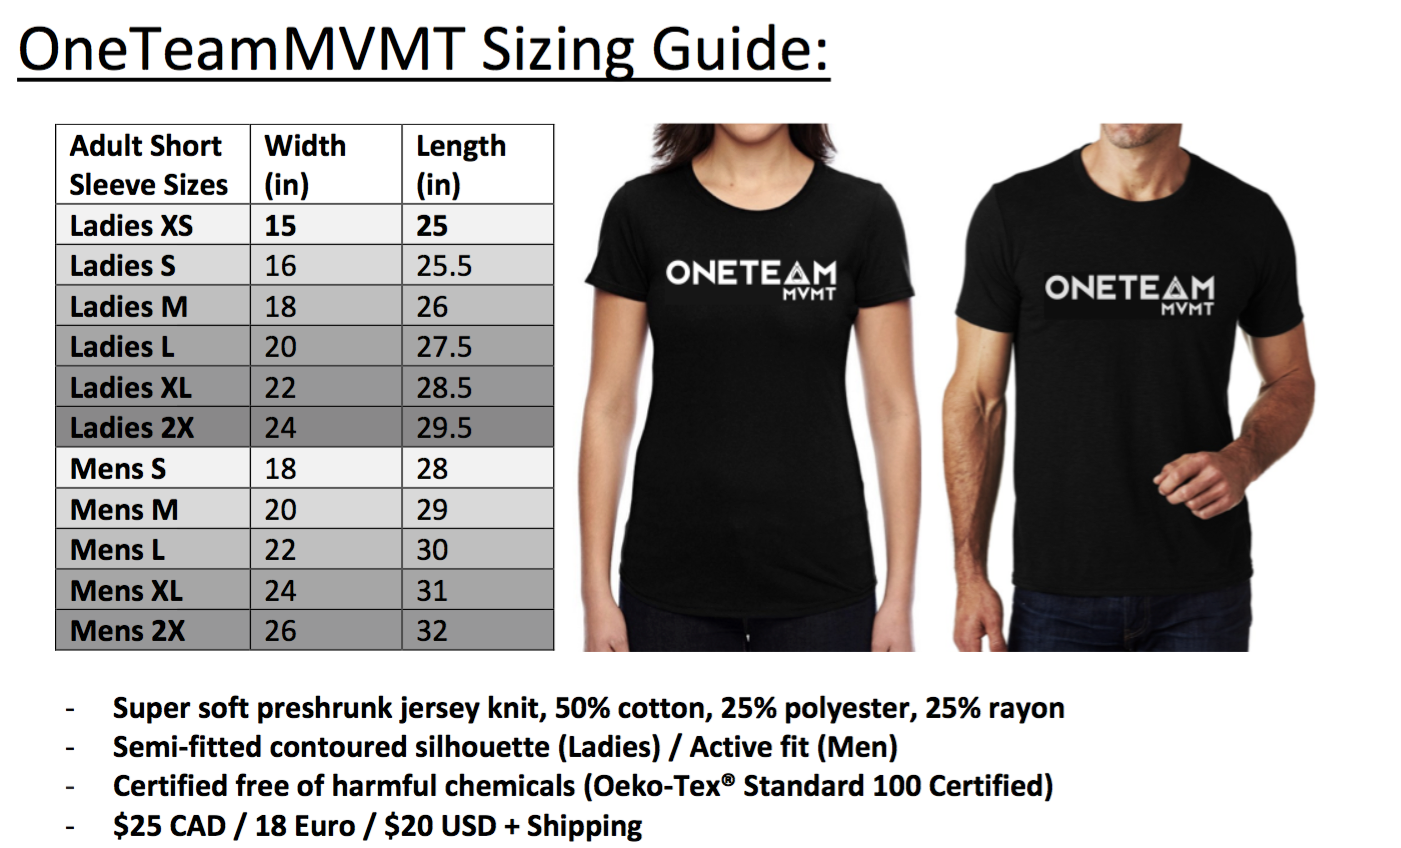 MENS Signature OneTeamMVMT T-shirt